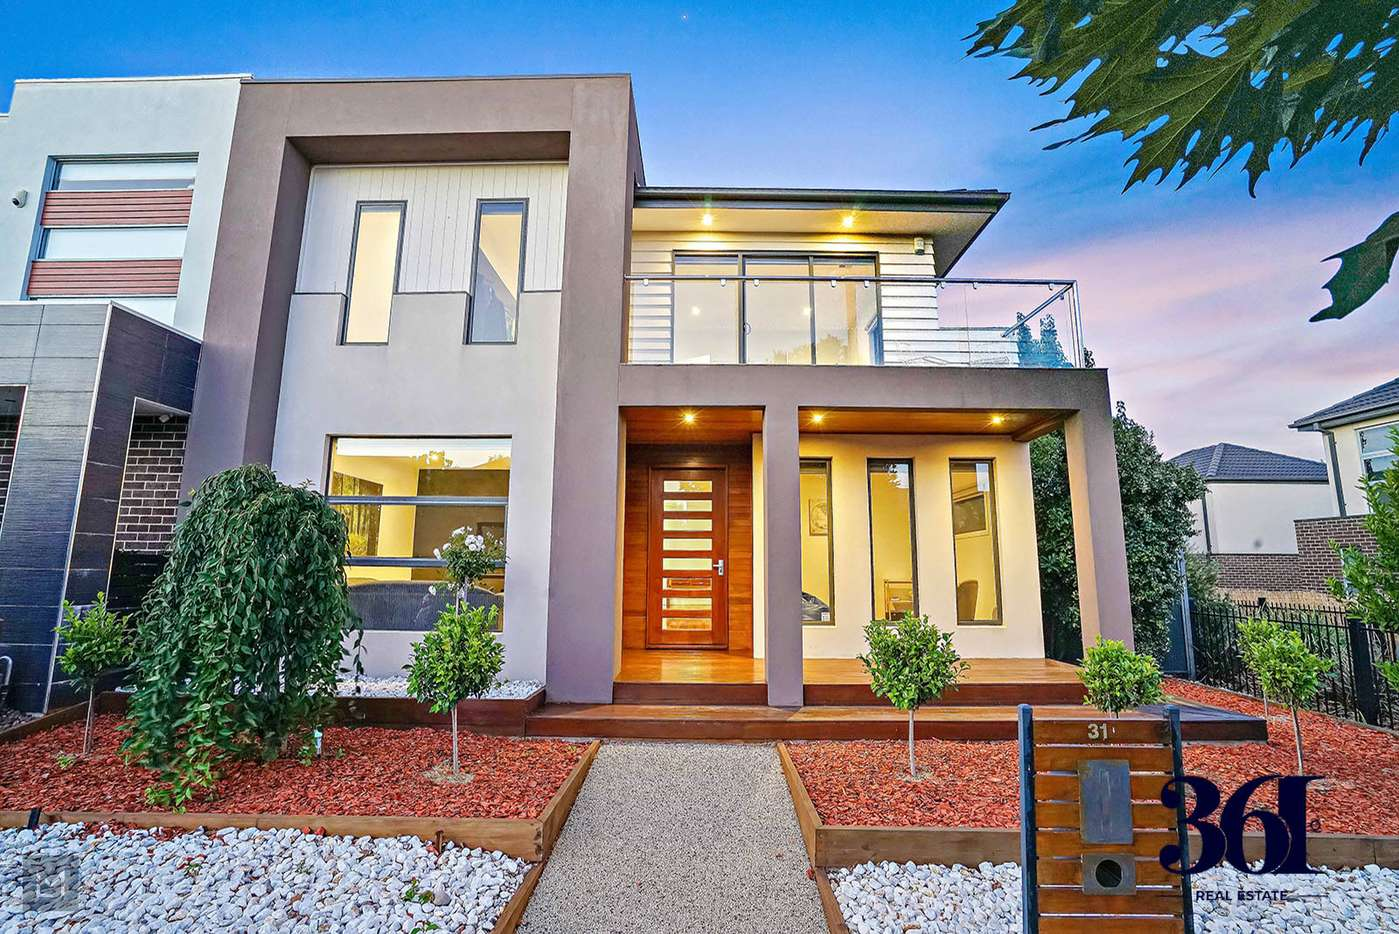 Main view of Homely house listing, 31 The Esplanade, Caroline Springs, VIC 3023